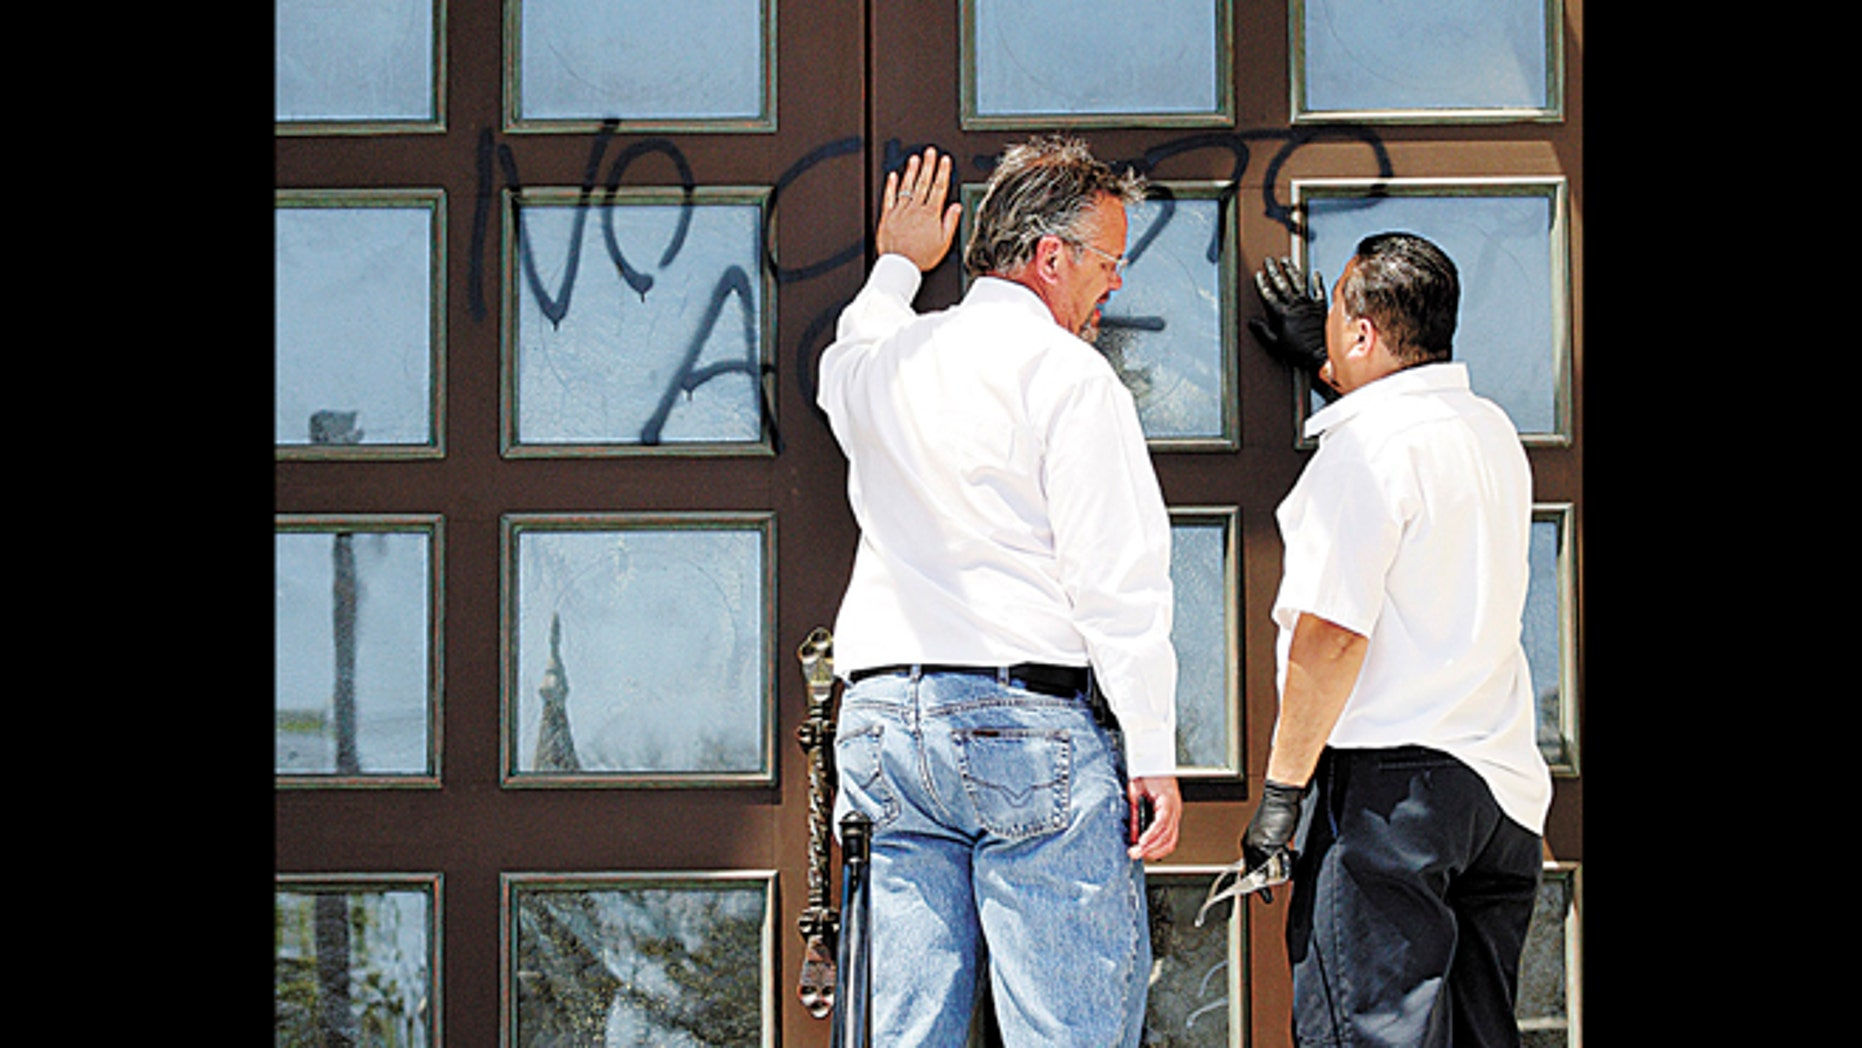 May 7, 2012: Church officials prepare to remove graffiti from Holy Cross Church in Santa Cruz, Calif.